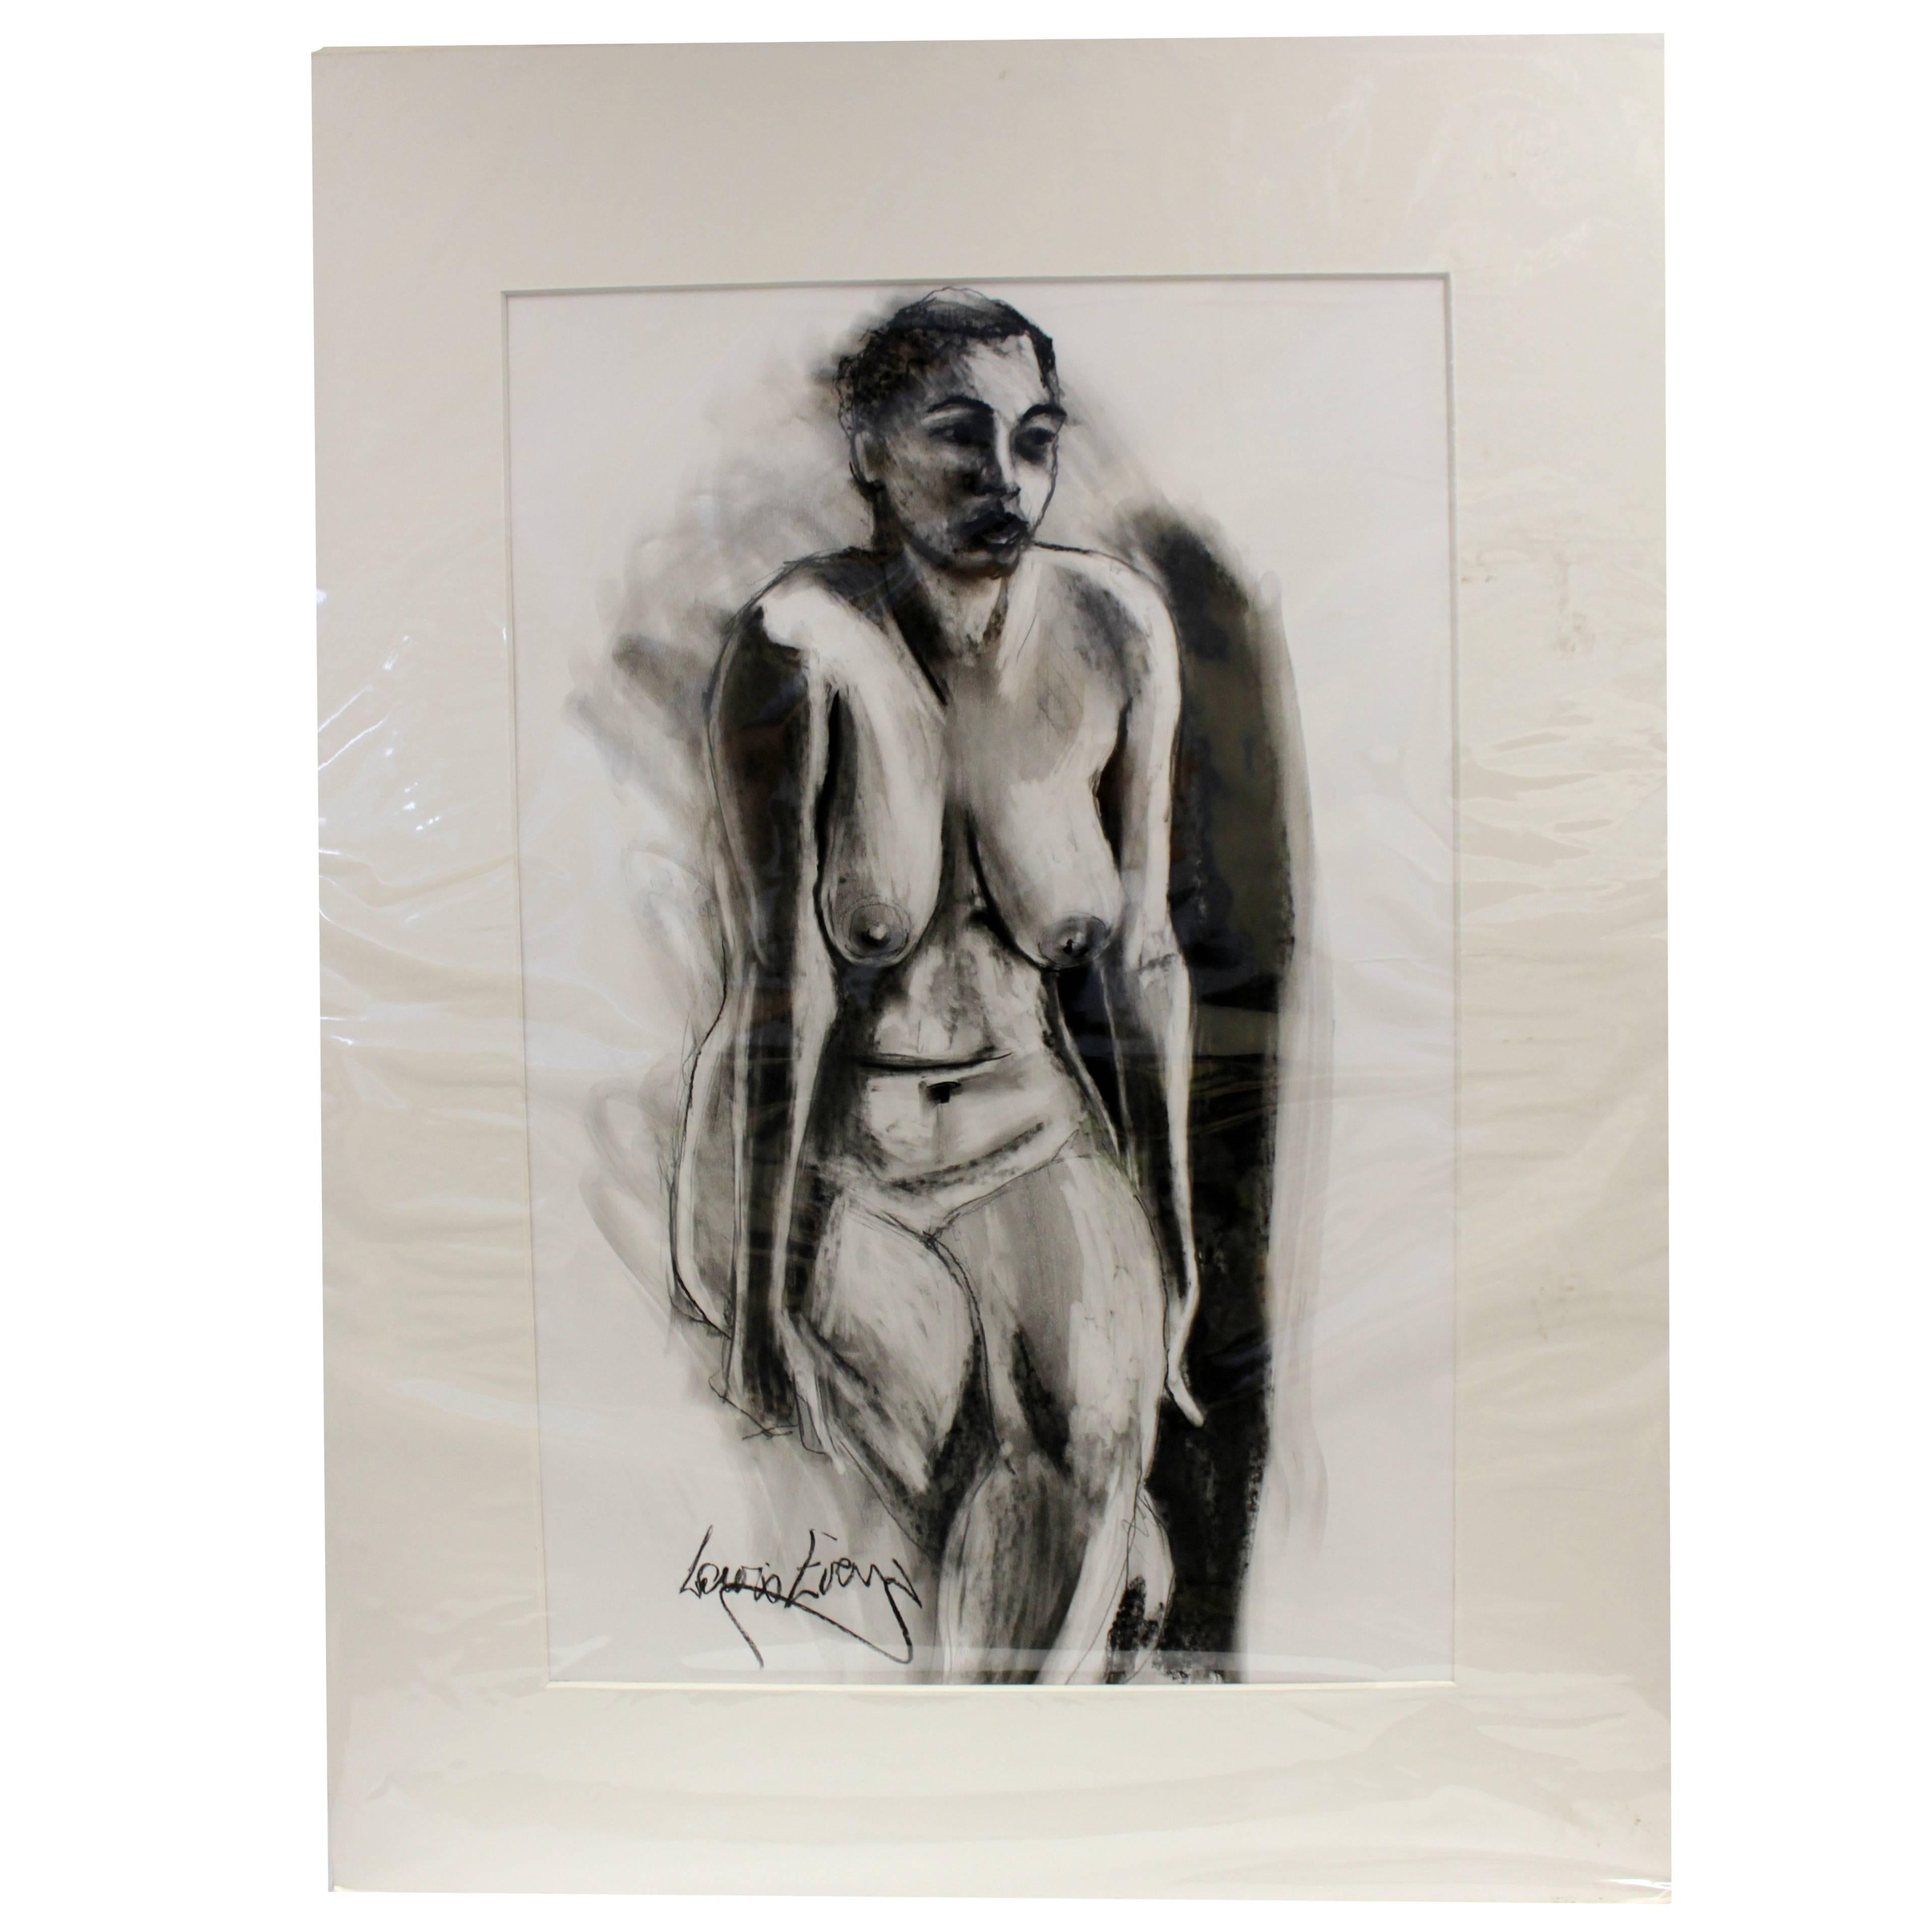 Charcoal Sketch Erotica Scene Painting, Signed by Lewis Evans, circa 1990s